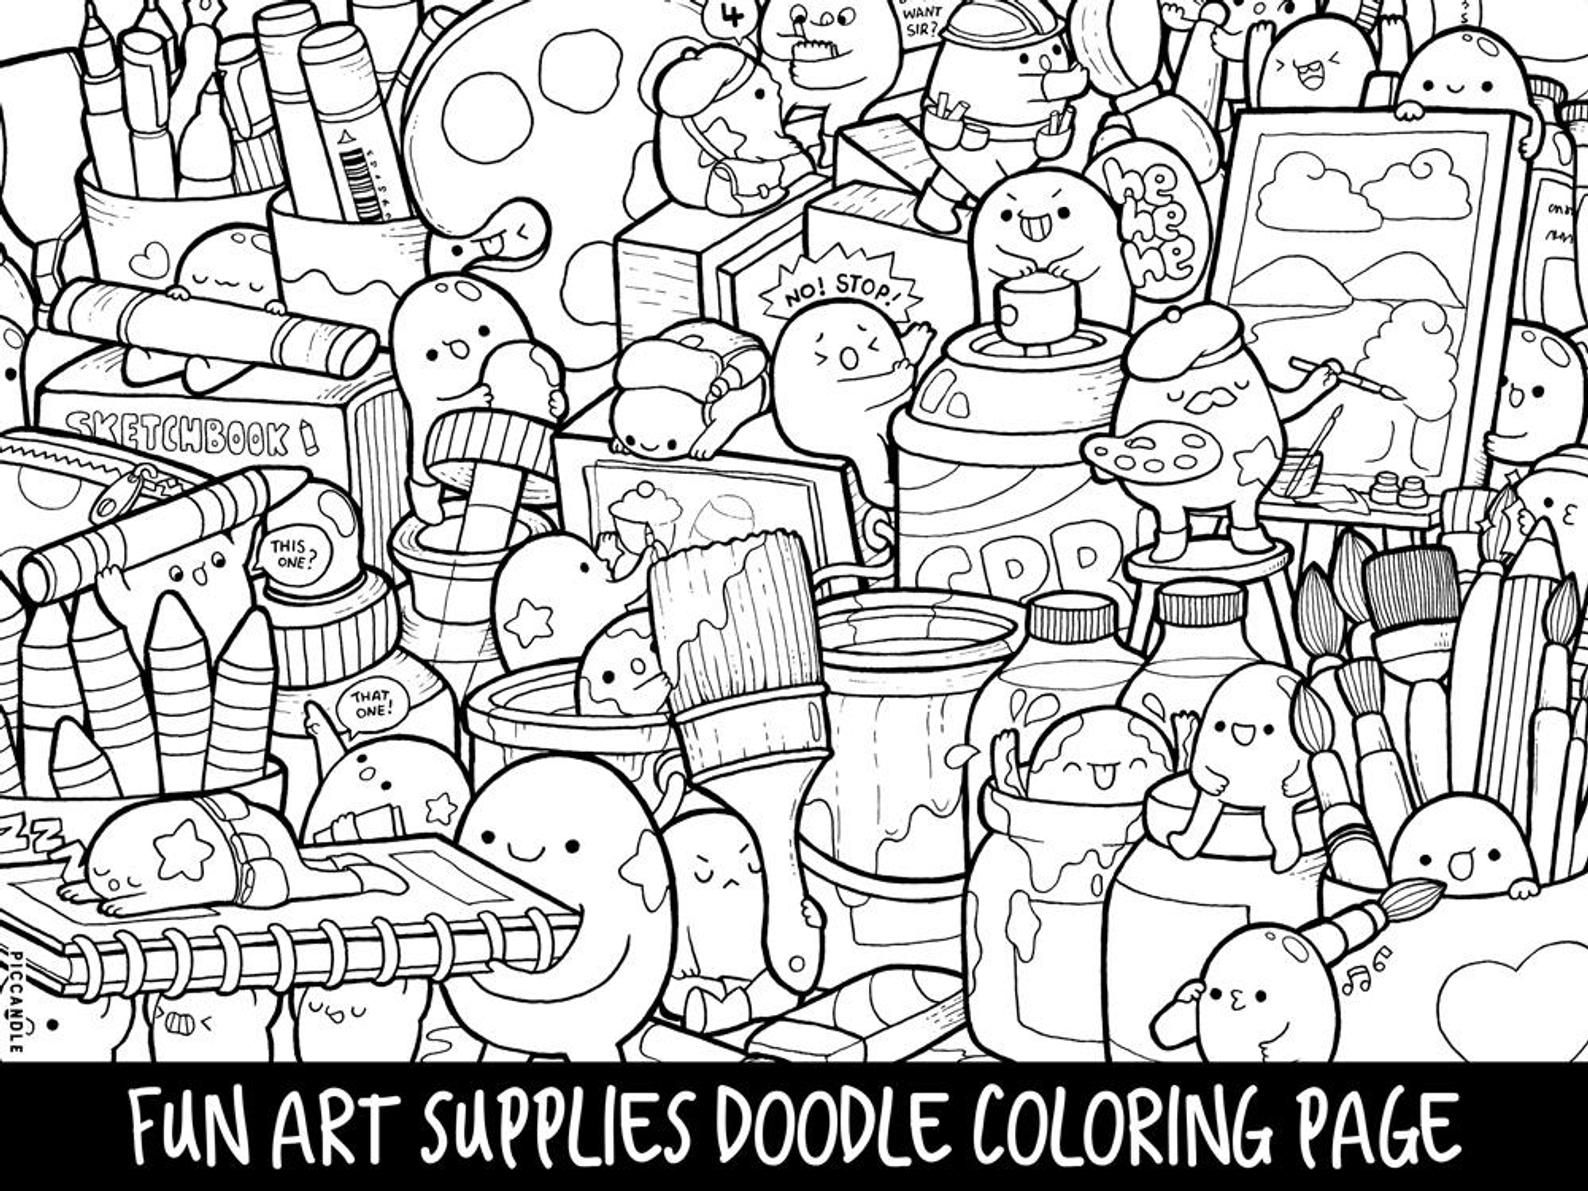 Art Supplies Doodle Coloring Page Printable Cute Kawaii Coloring Page For Kids And Adults Doodle Coloring Monster Coloring Pages Kawaii Doodles